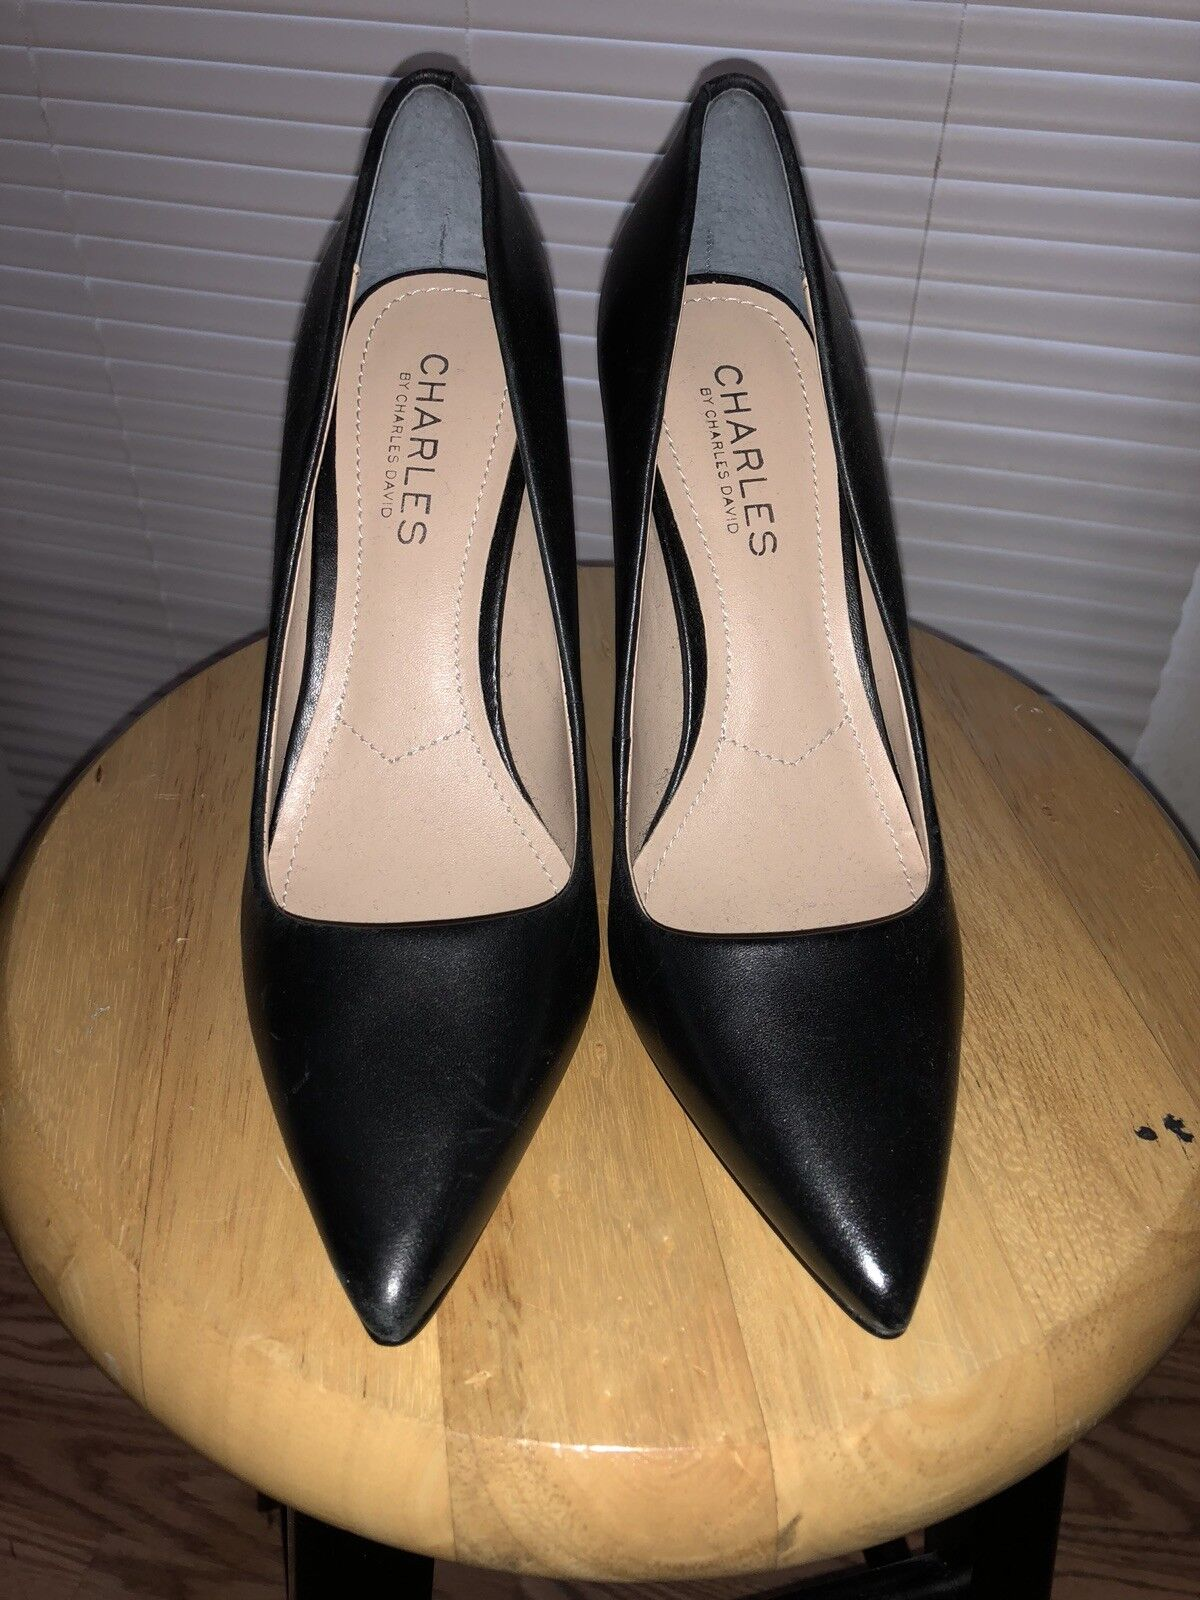 Charles by charles david leather nero donna pumps 5.2